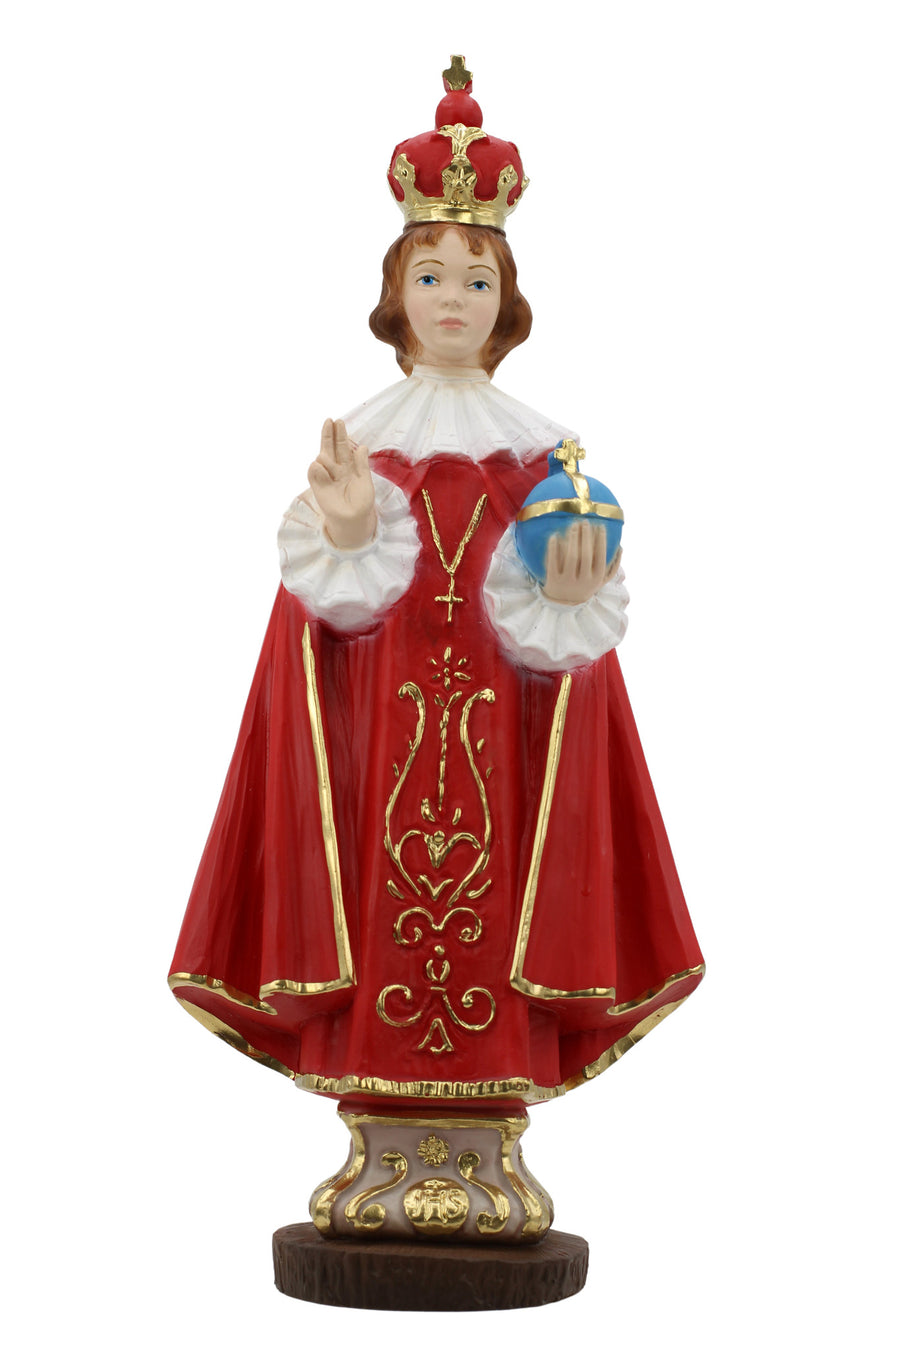 Infant Jesus of Prague Tuscan Style Collection / Divino Nino Jesus de Praga